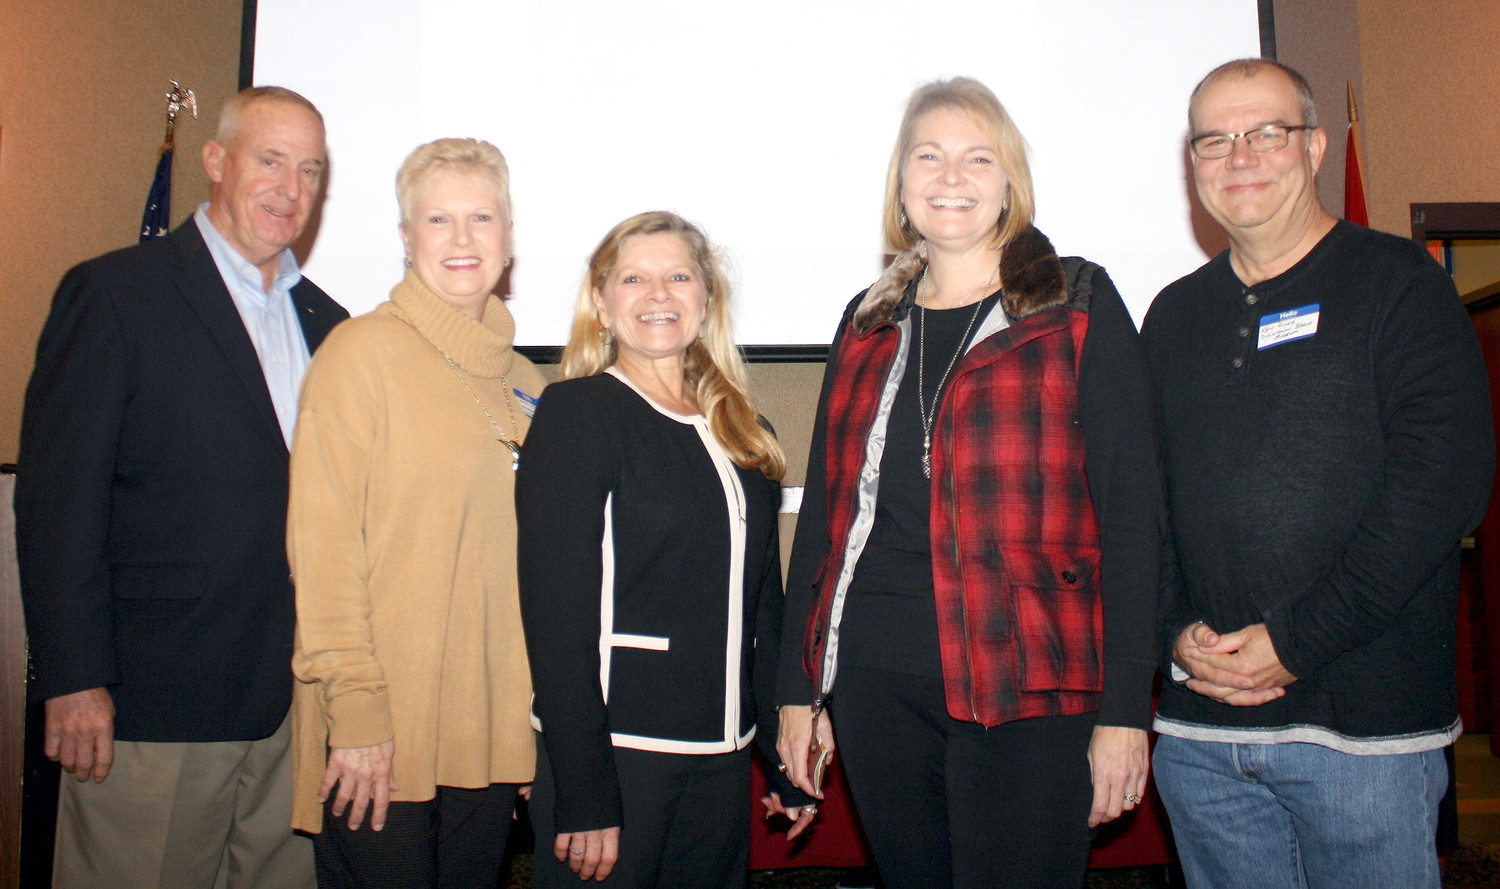 The BOARD OF DIRECTORS for the newly formed Old Copper Road Preservation Alliance includes, from left, Joe Fetzer, Janice Neyman, Dana Teasley, Melissa Wood and Ken Rush. Historian Brian Reed is also a member, but was unable to attend Wednesday's meeting.